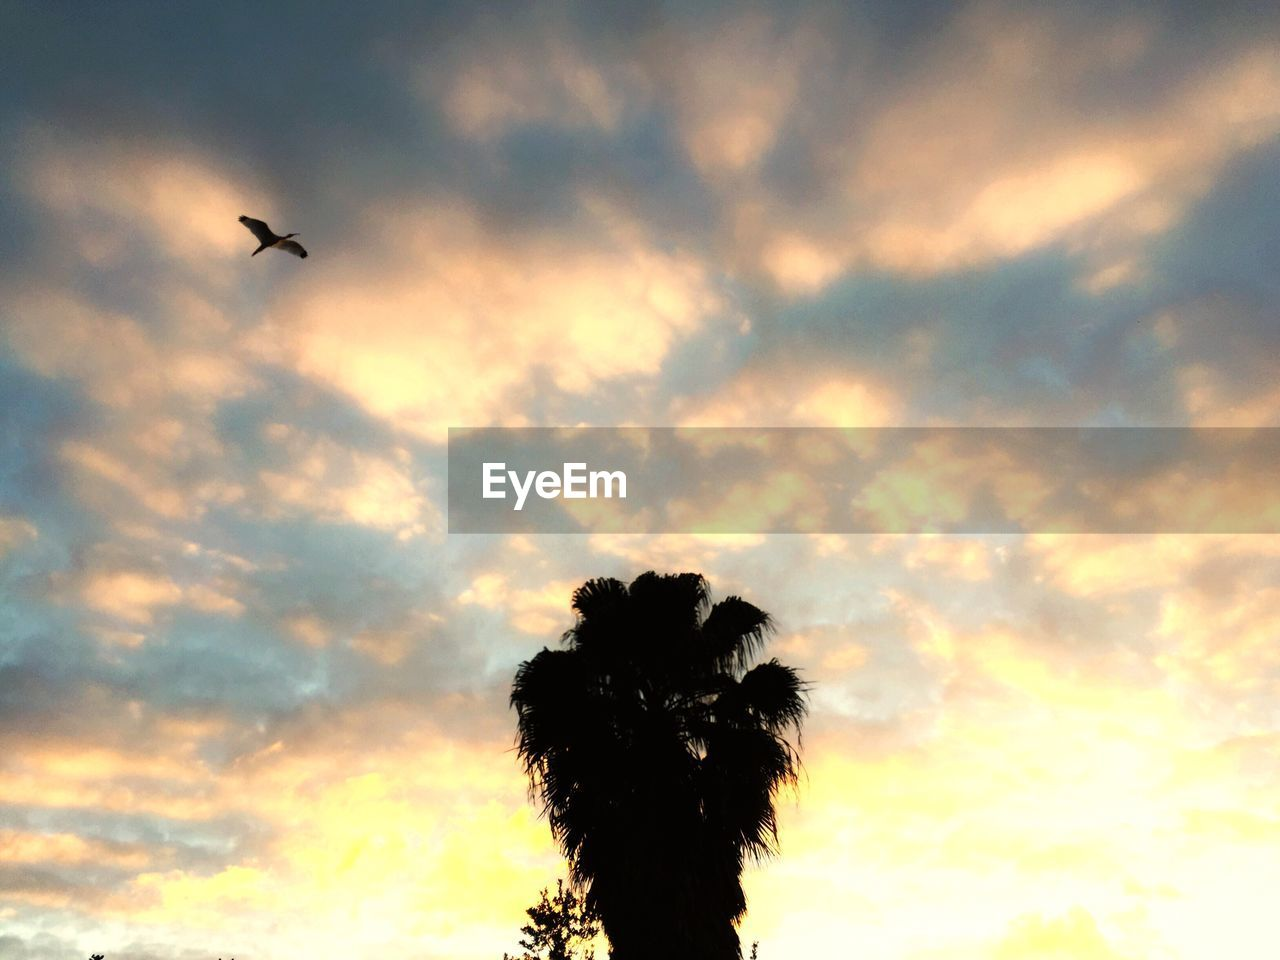 sky, low angle view, sunset, silhouette, flying, cloud - sky, nature, no people, tree, beauty in nature, outdoors, palm tree, scenics, animal themes, day, airplane, bird